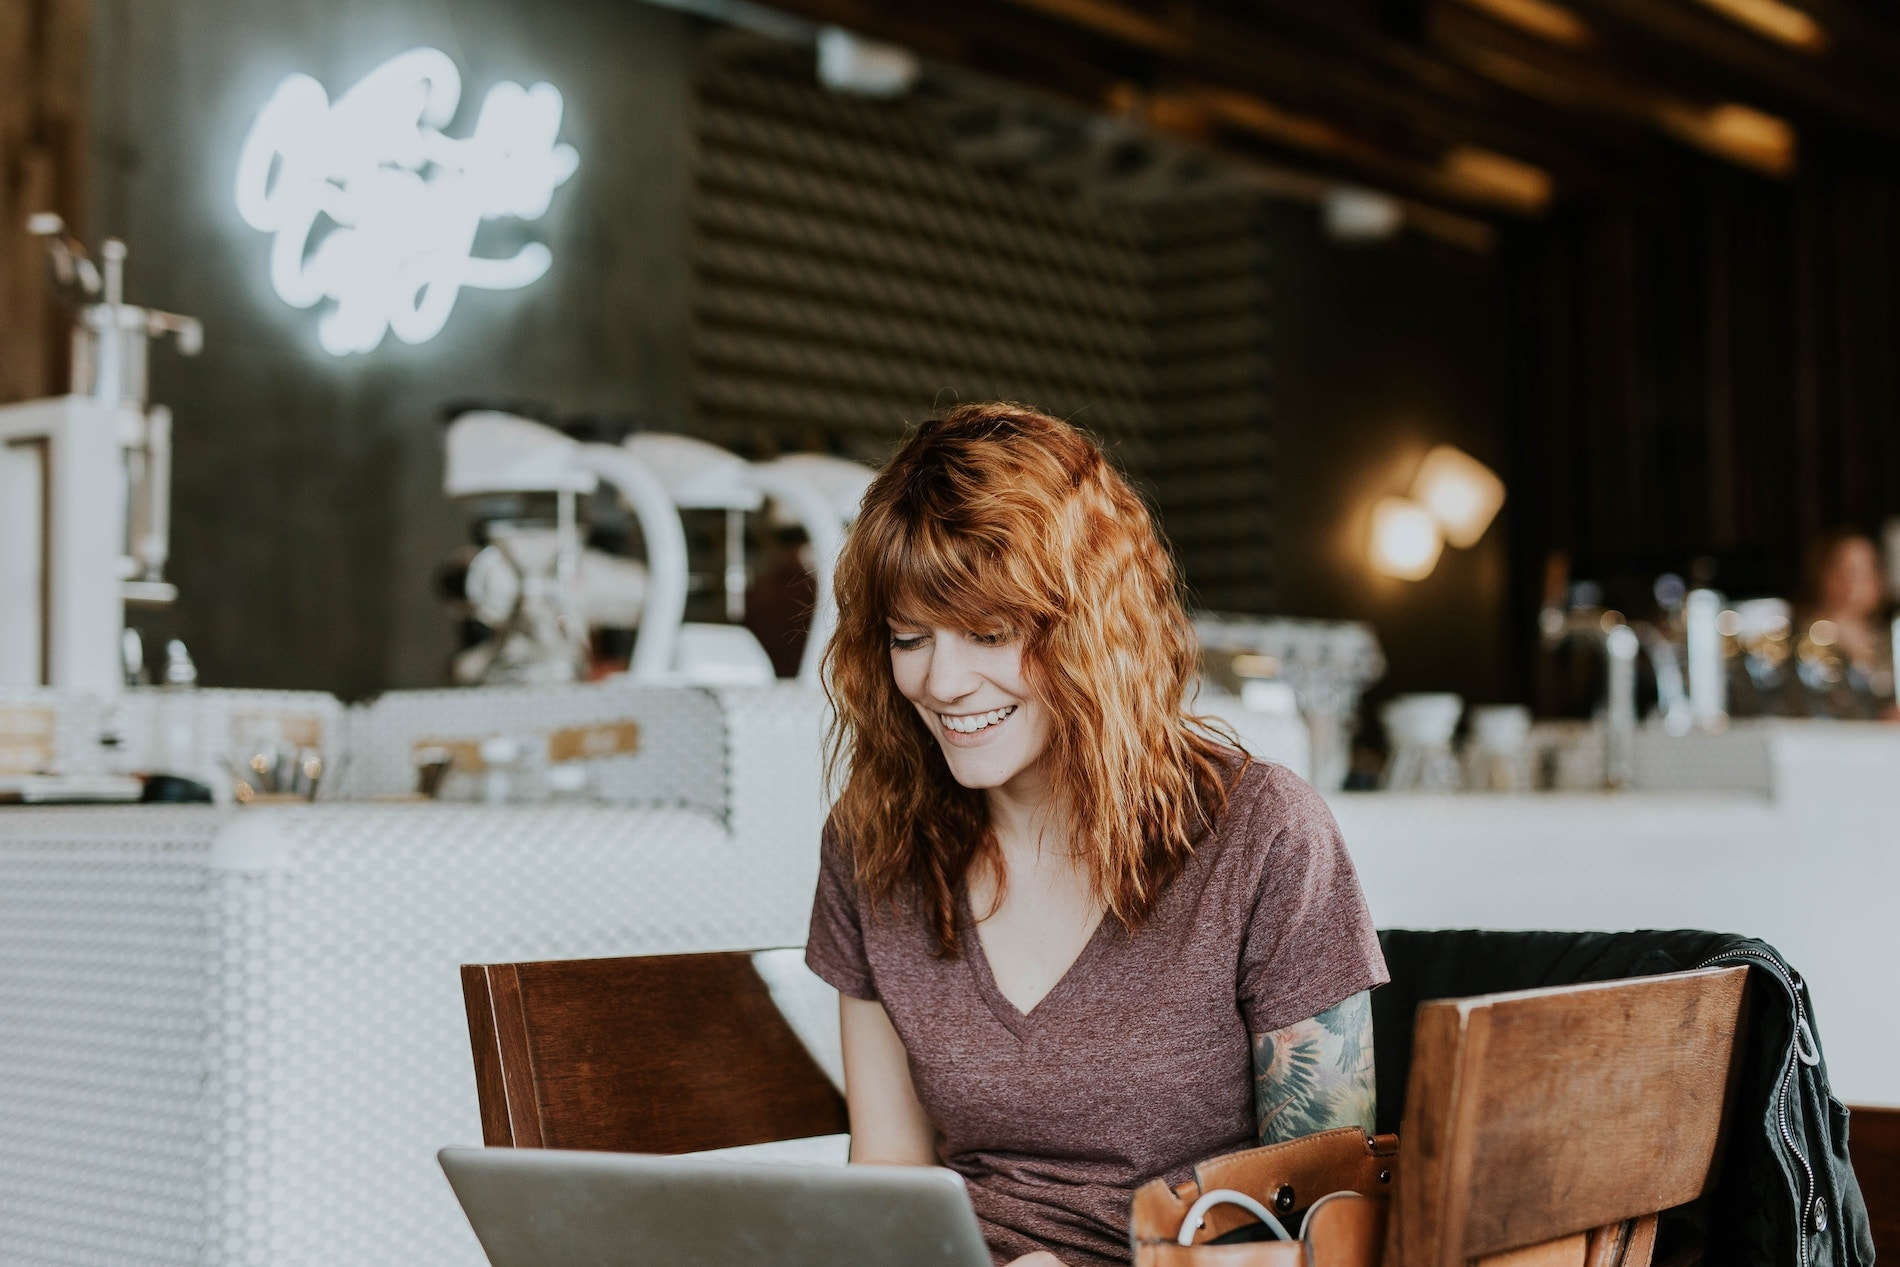 Young woman smiling at laptop